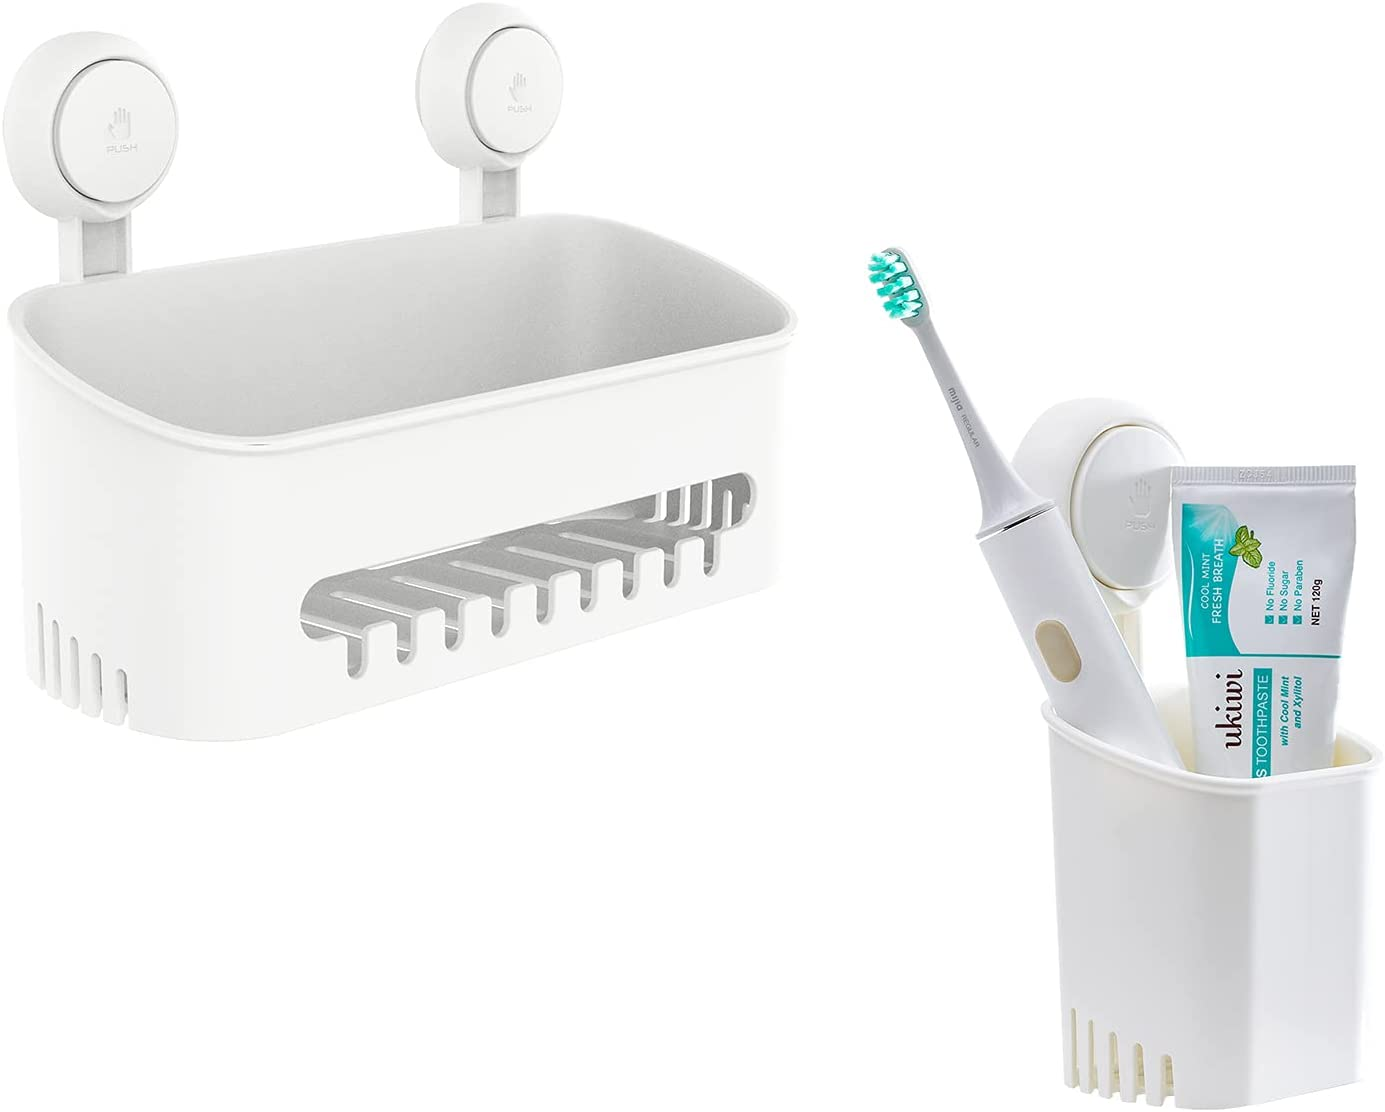 Suction Cup Shower Caddy With No Max 87% OFF Toothbrush Set Holder Drilling New York Mall